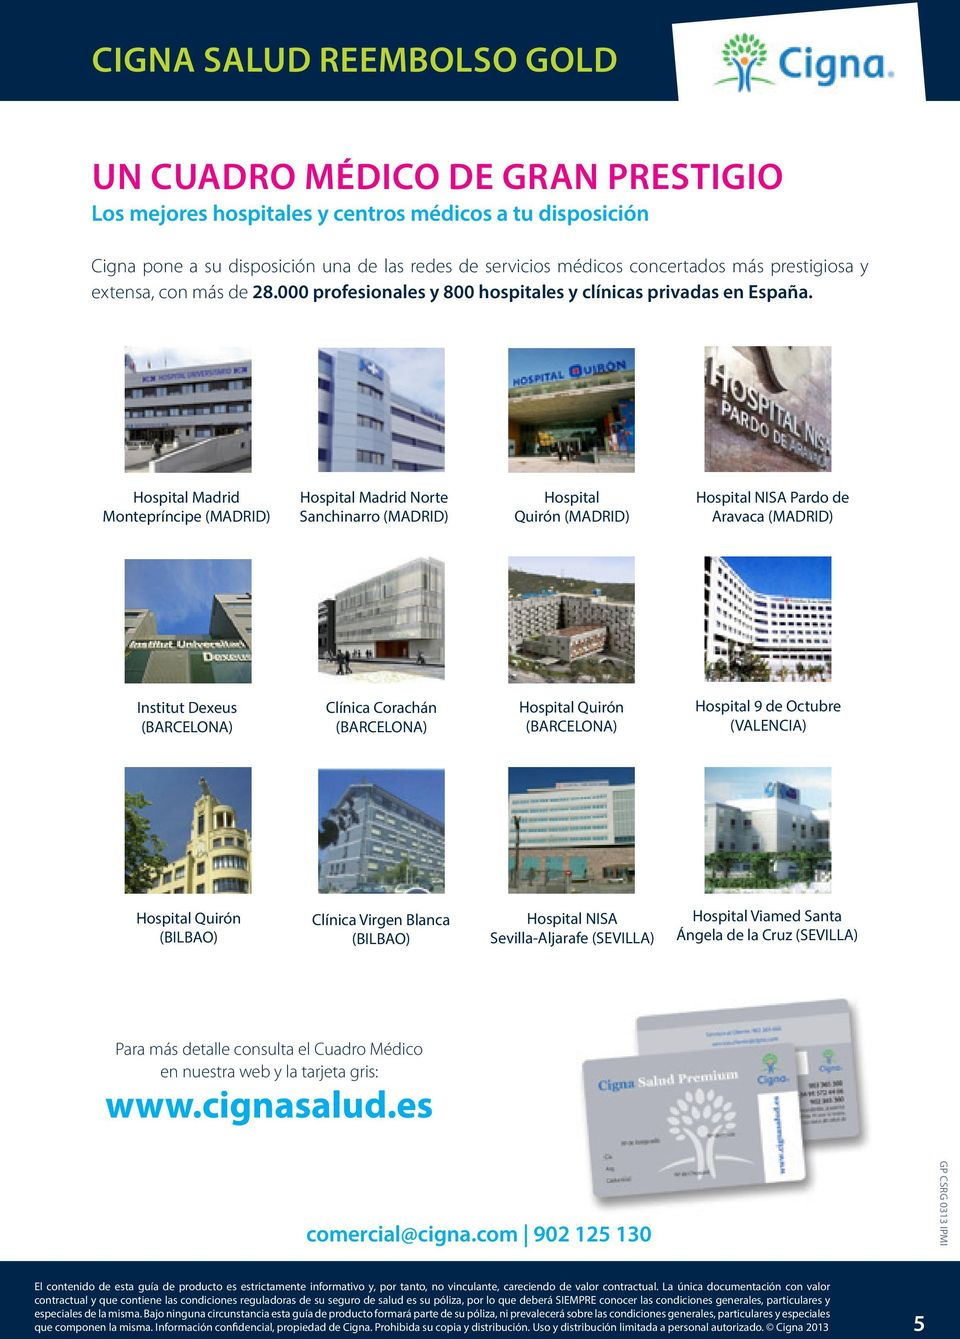 Hospital Madrid Montepríncipe (MADRID) Hospital Madrid Norte Sanchinarro (MADRID) Hospital Quirón (MADRID) Hospital NISA Pardo de Aravaca (MADRID) Institut Dexeus (BARCELONA) Clínica Corachán